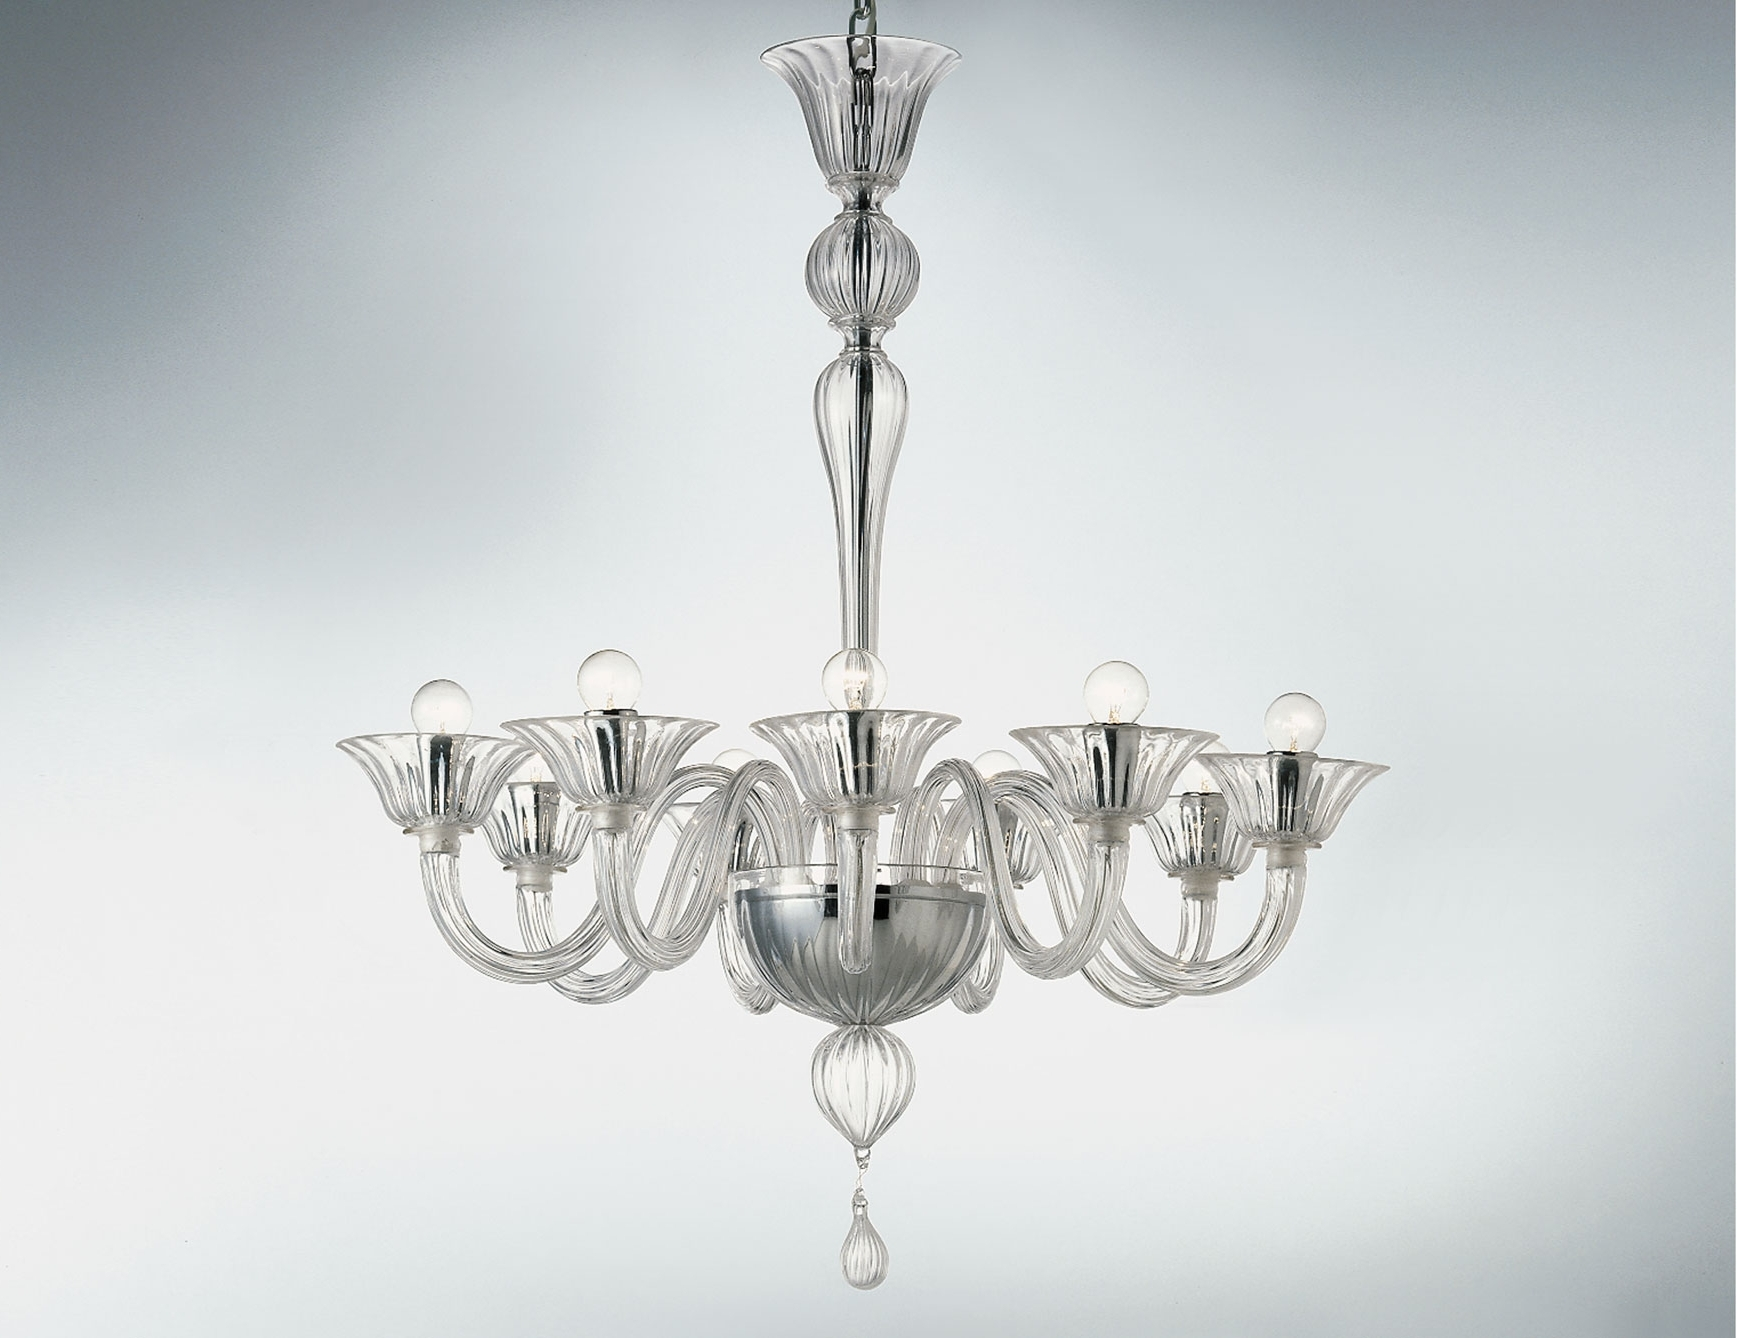 Clear Glass Chandeliers for Recent Nella Vetrina Cadona 8007-09 Venetian Chandelier In Clear Glass